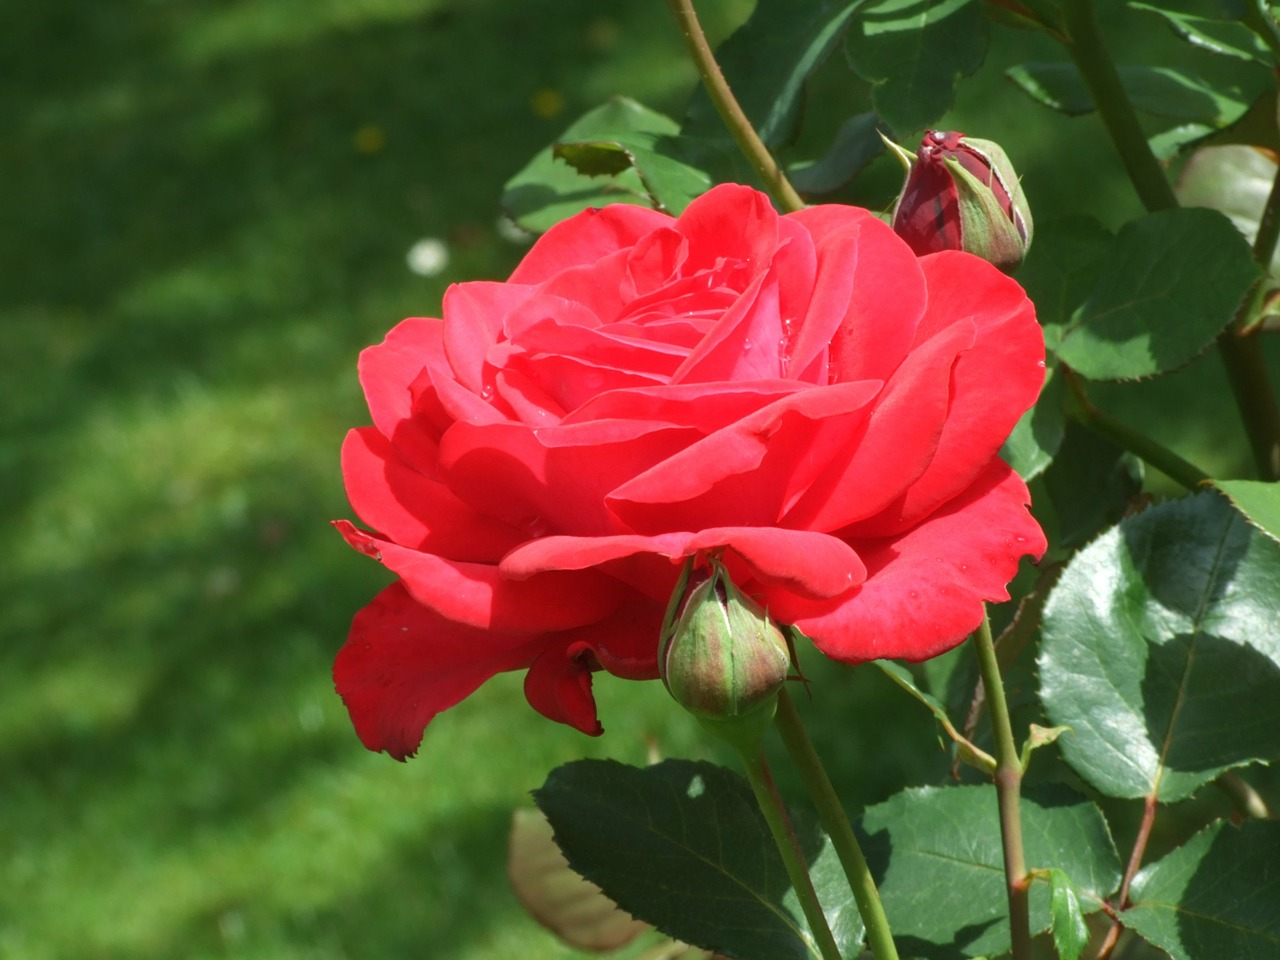 red rose plant blossom free photo